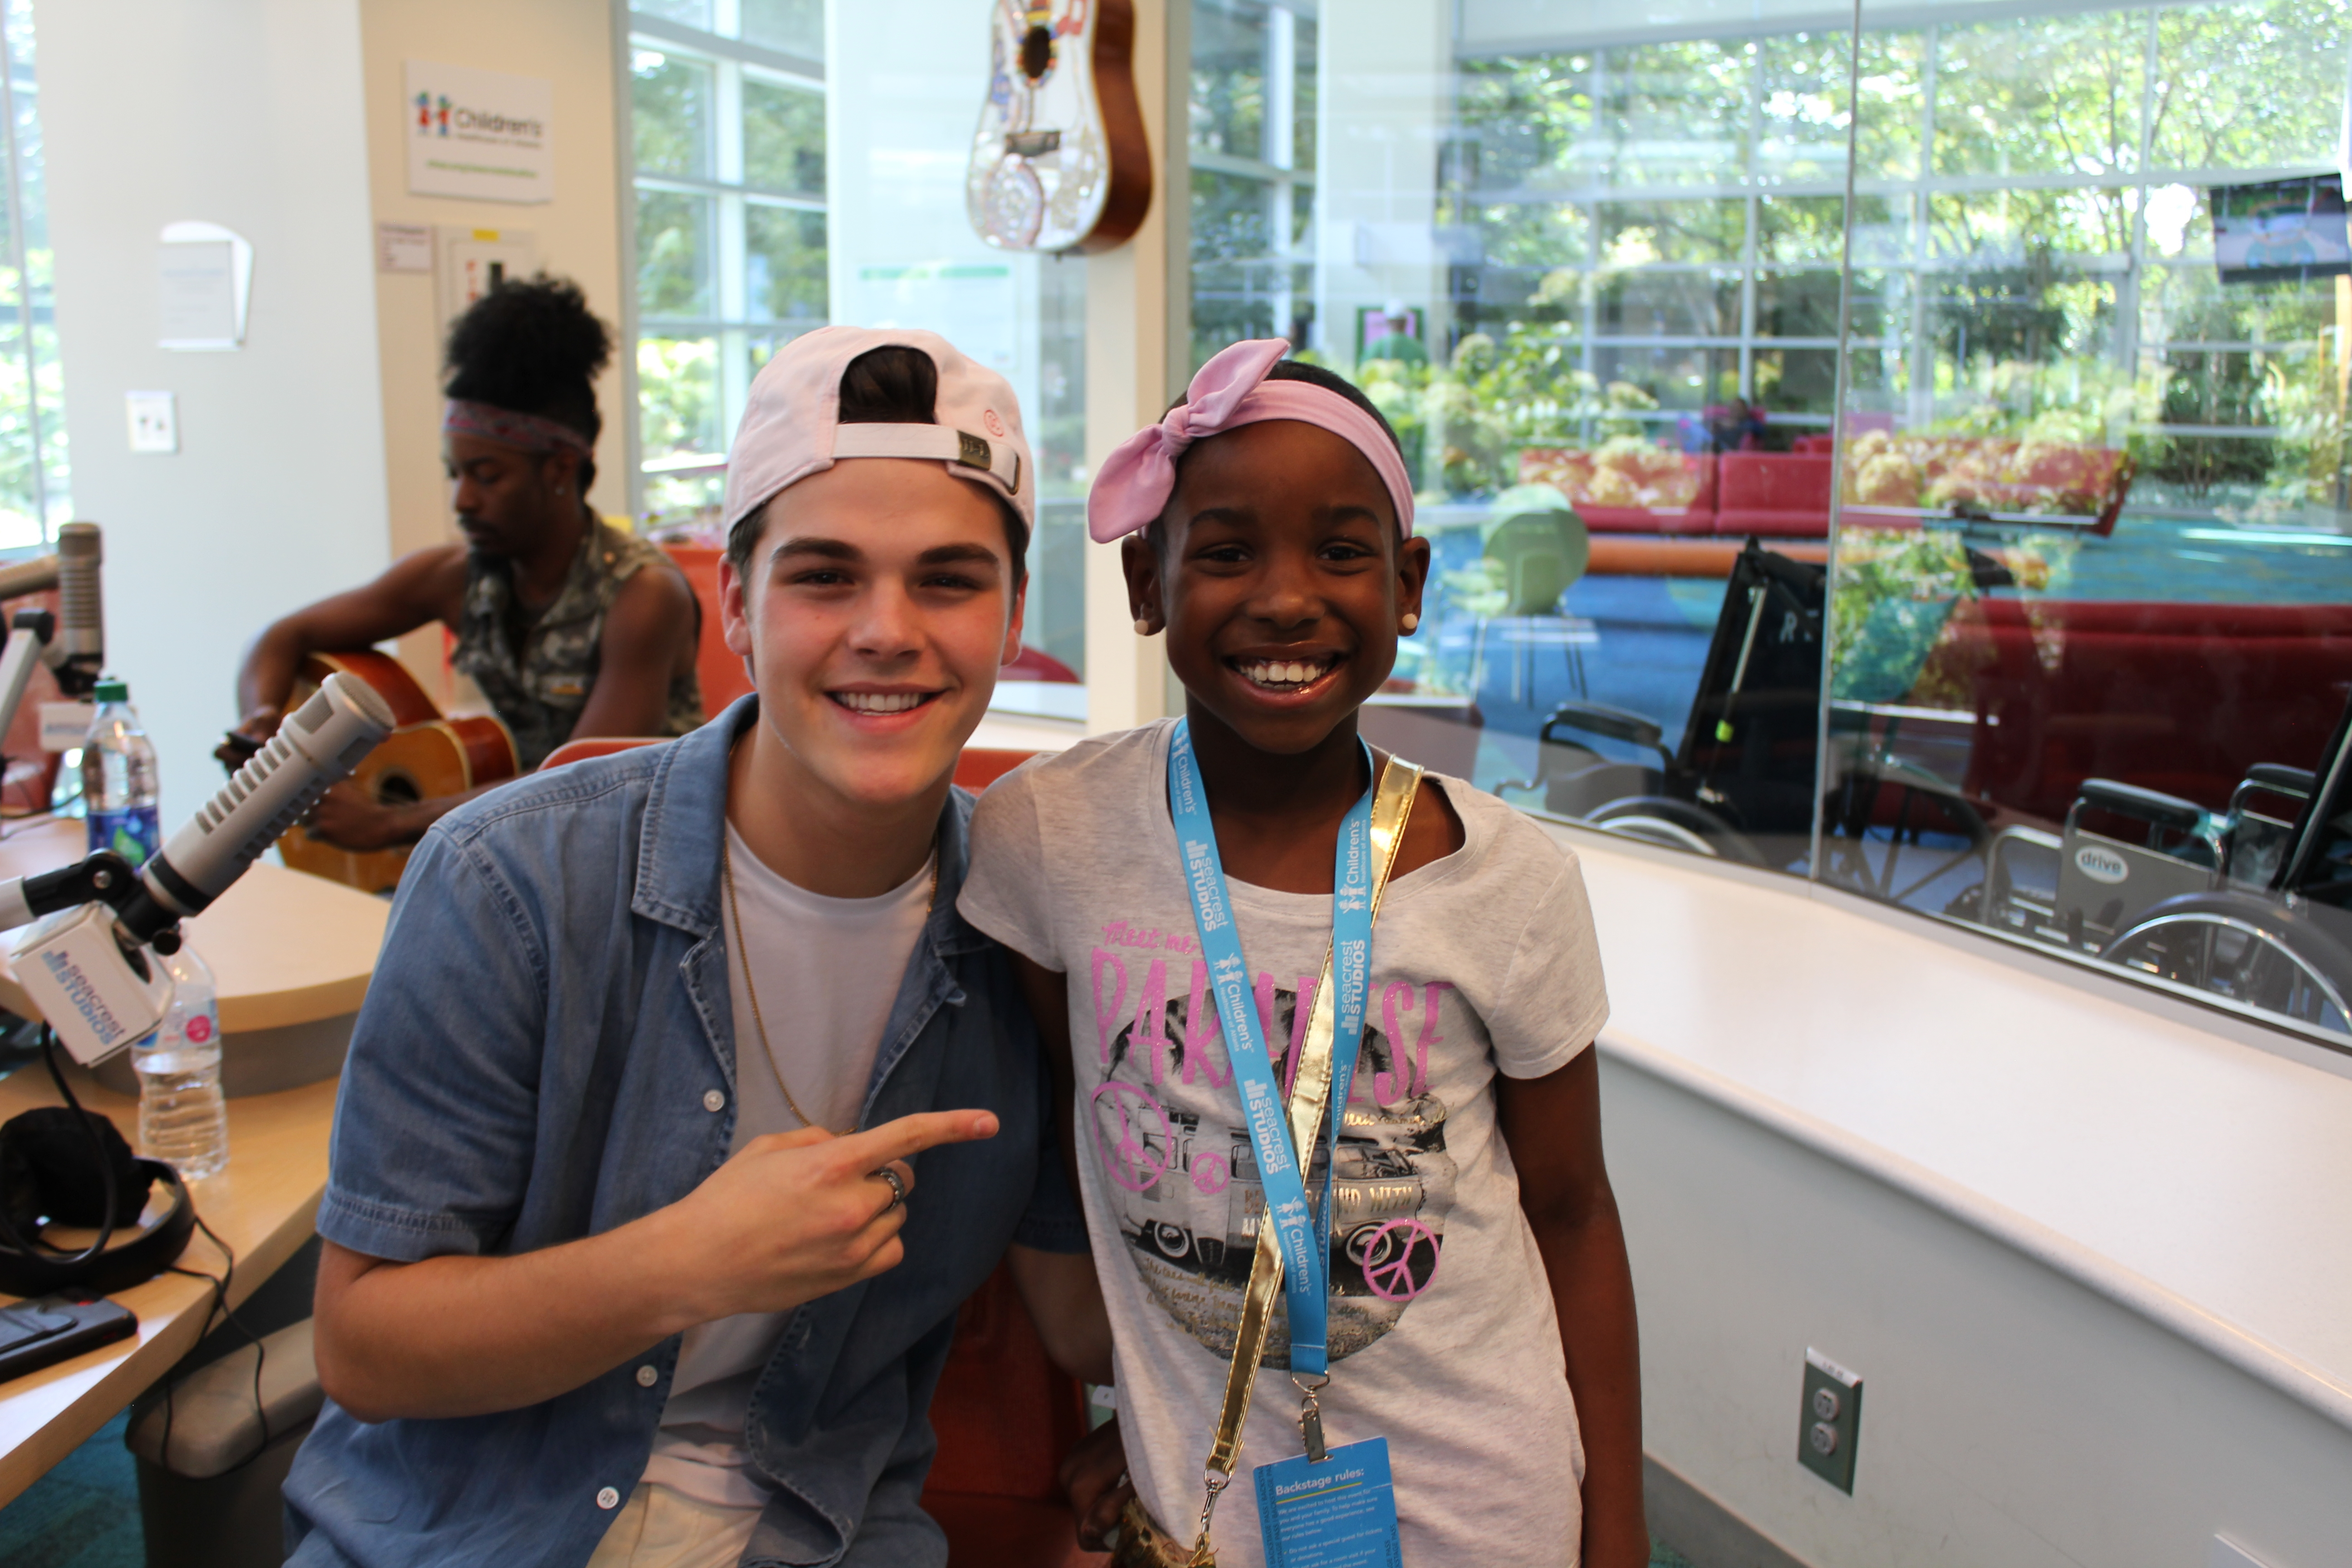 AJ Mitchell Performs for Patients at Children's Healthcare of Atlanta